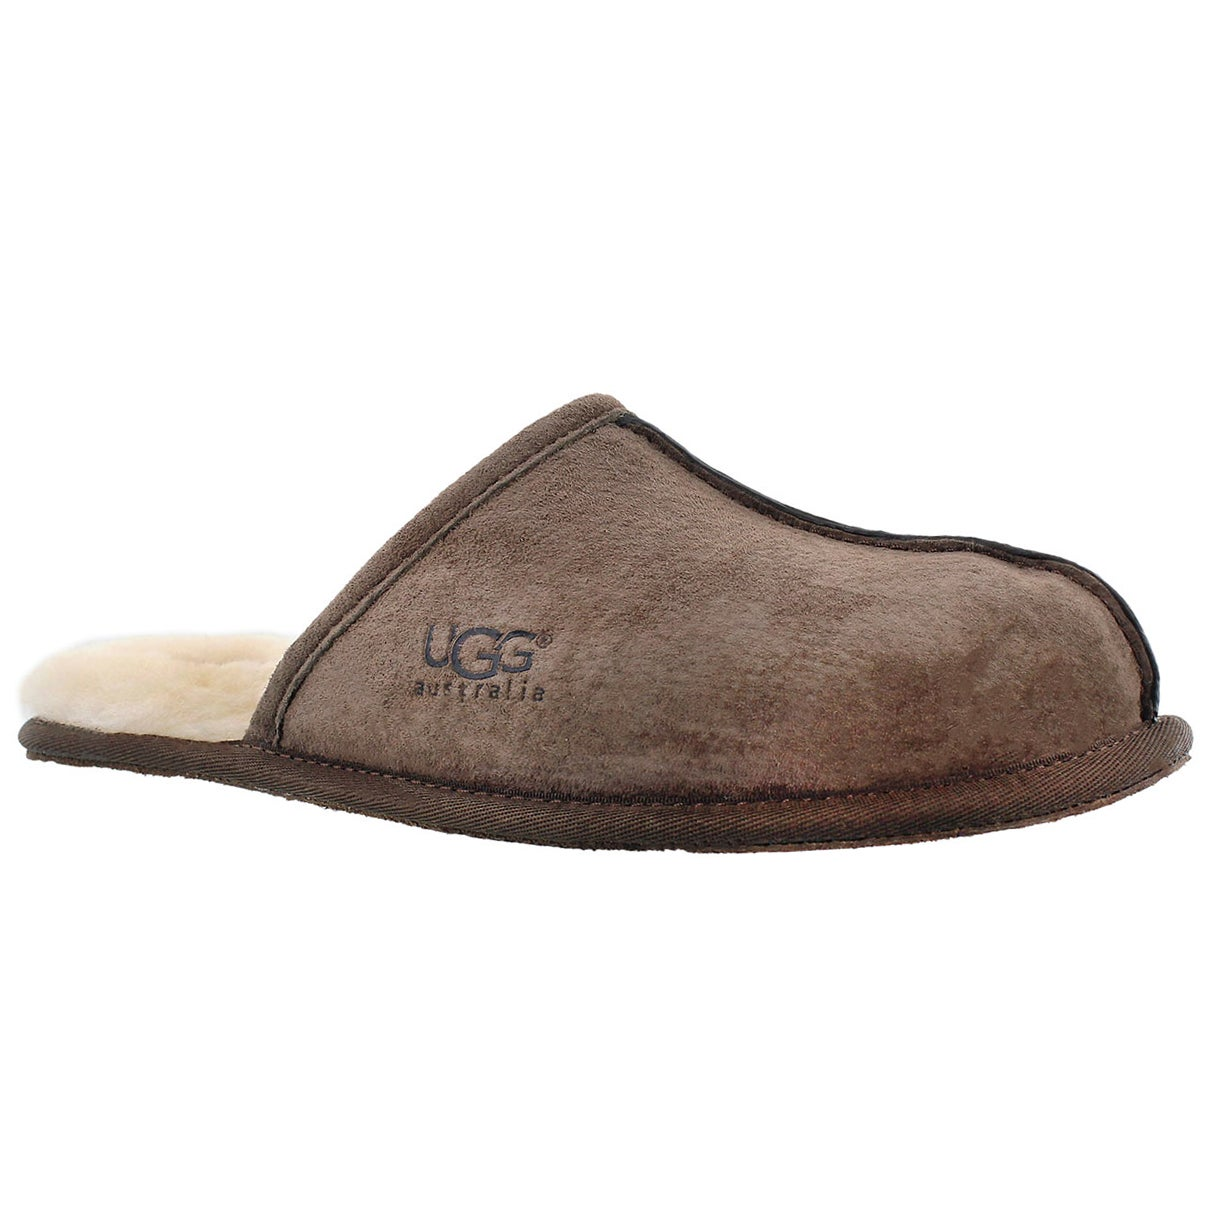 Men's SCUFF espresso suede/sheepskin slippers